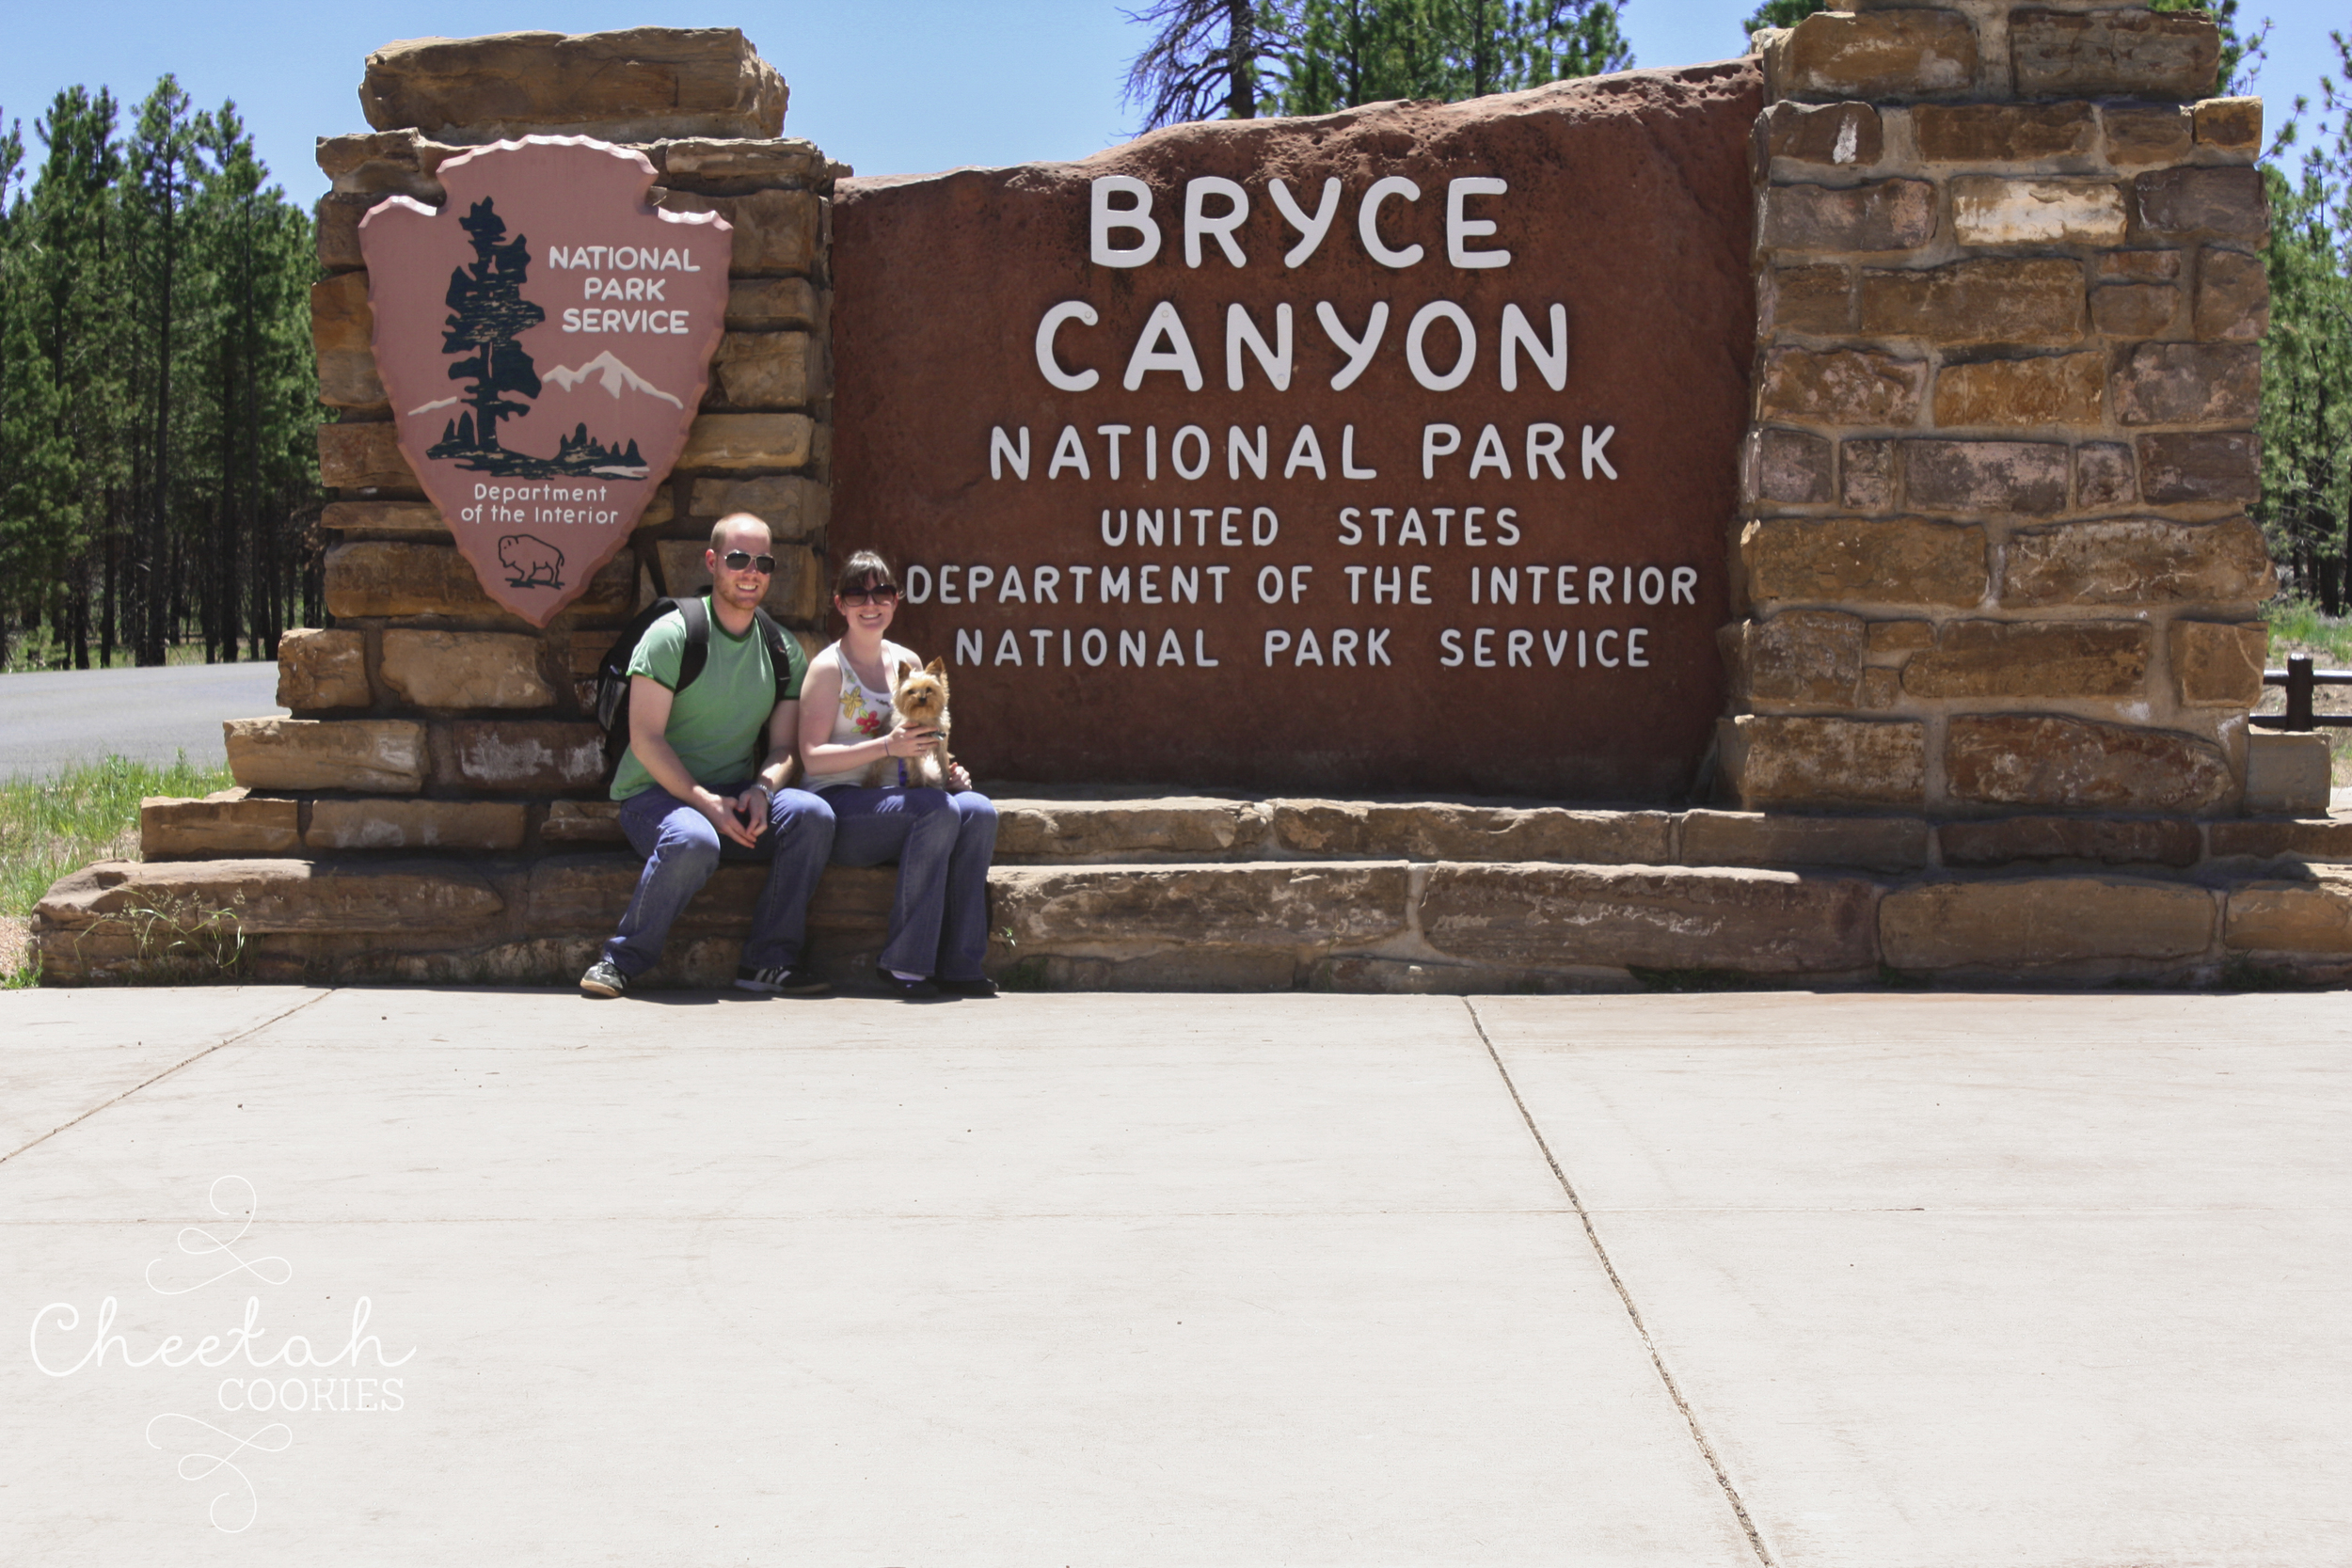 Bryce Canyon- June 24th 2010